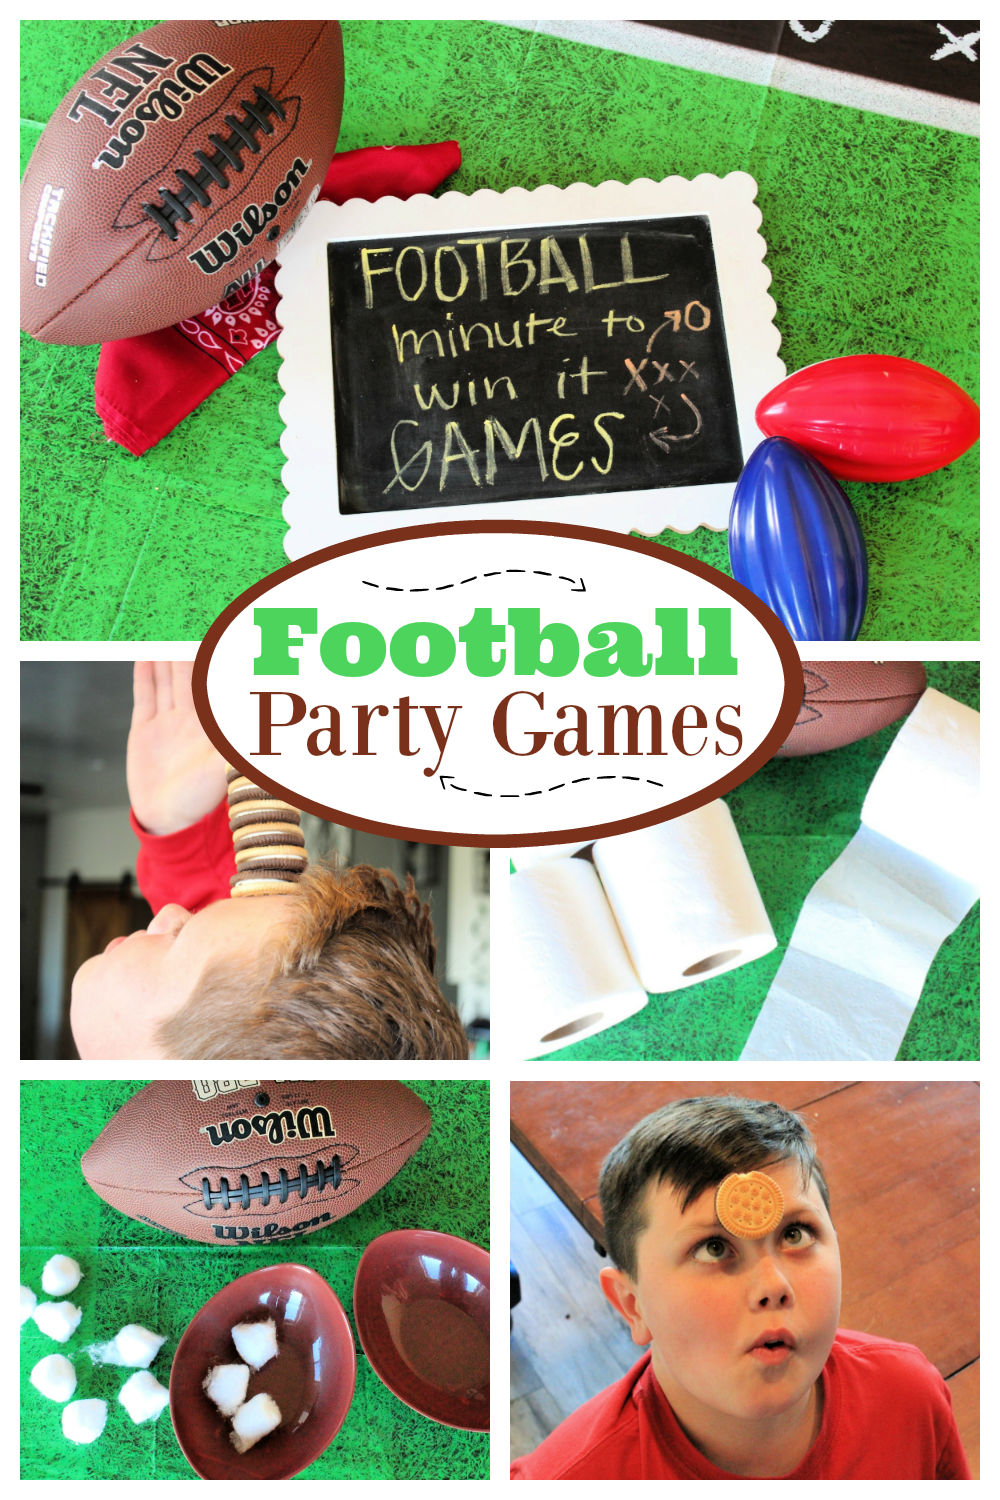 Fun Football Minute to Win it Party Games! We have some super simple and super fun minute to win it football party games. #footballparty #footballpartygames #minutetowinitgames #minutetowinute #partygames #partyideas